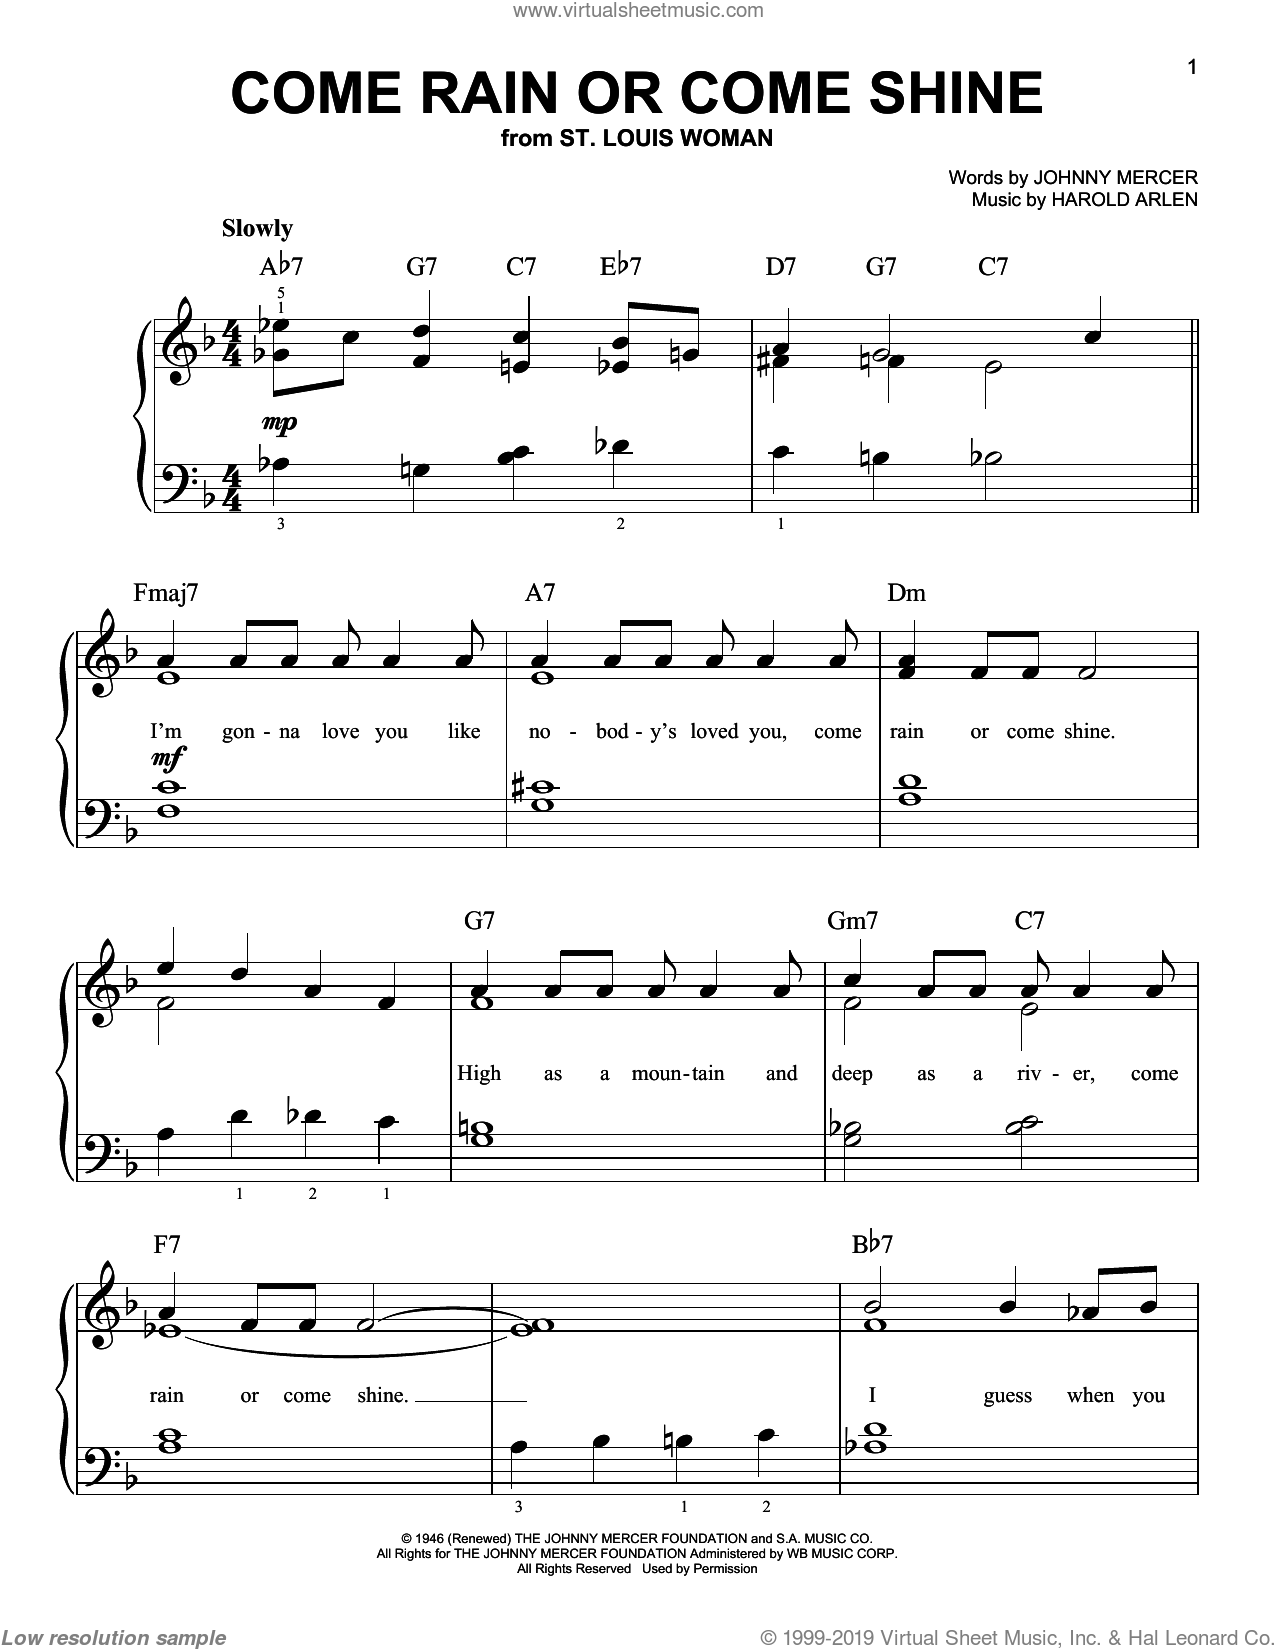 Come Rain Or Come Shine sheet music for piano solo by Frank Sinatra, Harold Arlen and Johnny Mercer, easy. Score Image Preview.